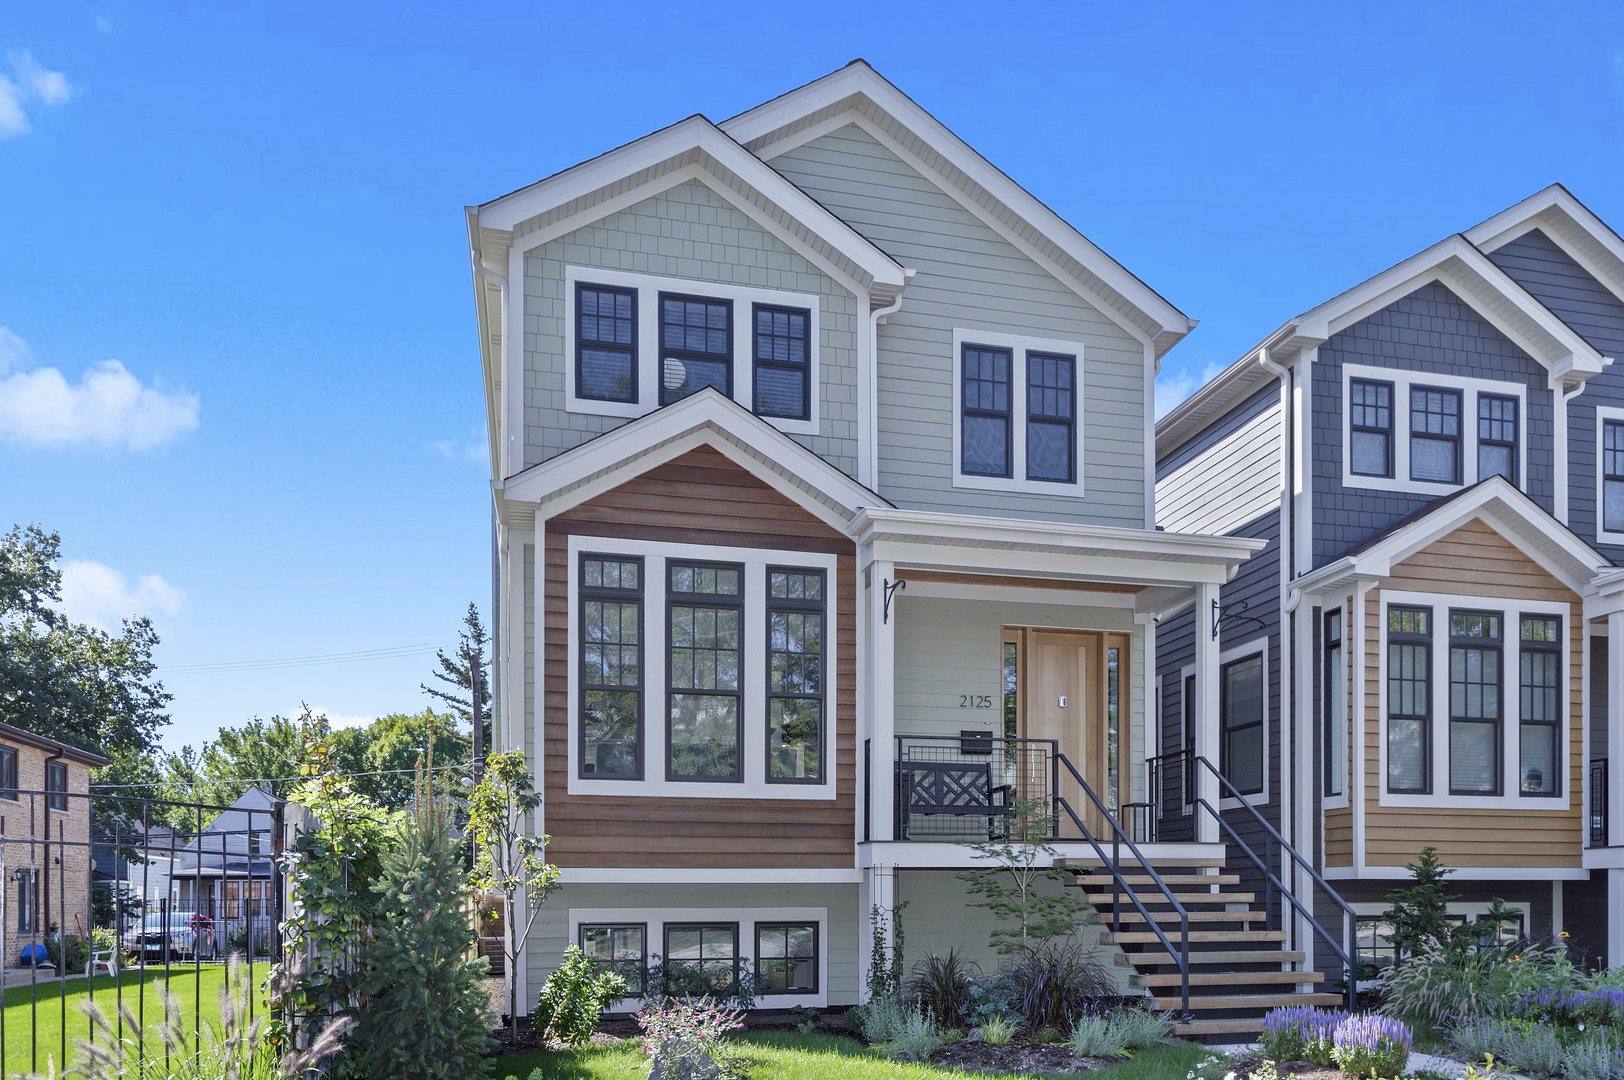 2125 West Balmoral Avenue, one of homes for sale in Lincoln Square